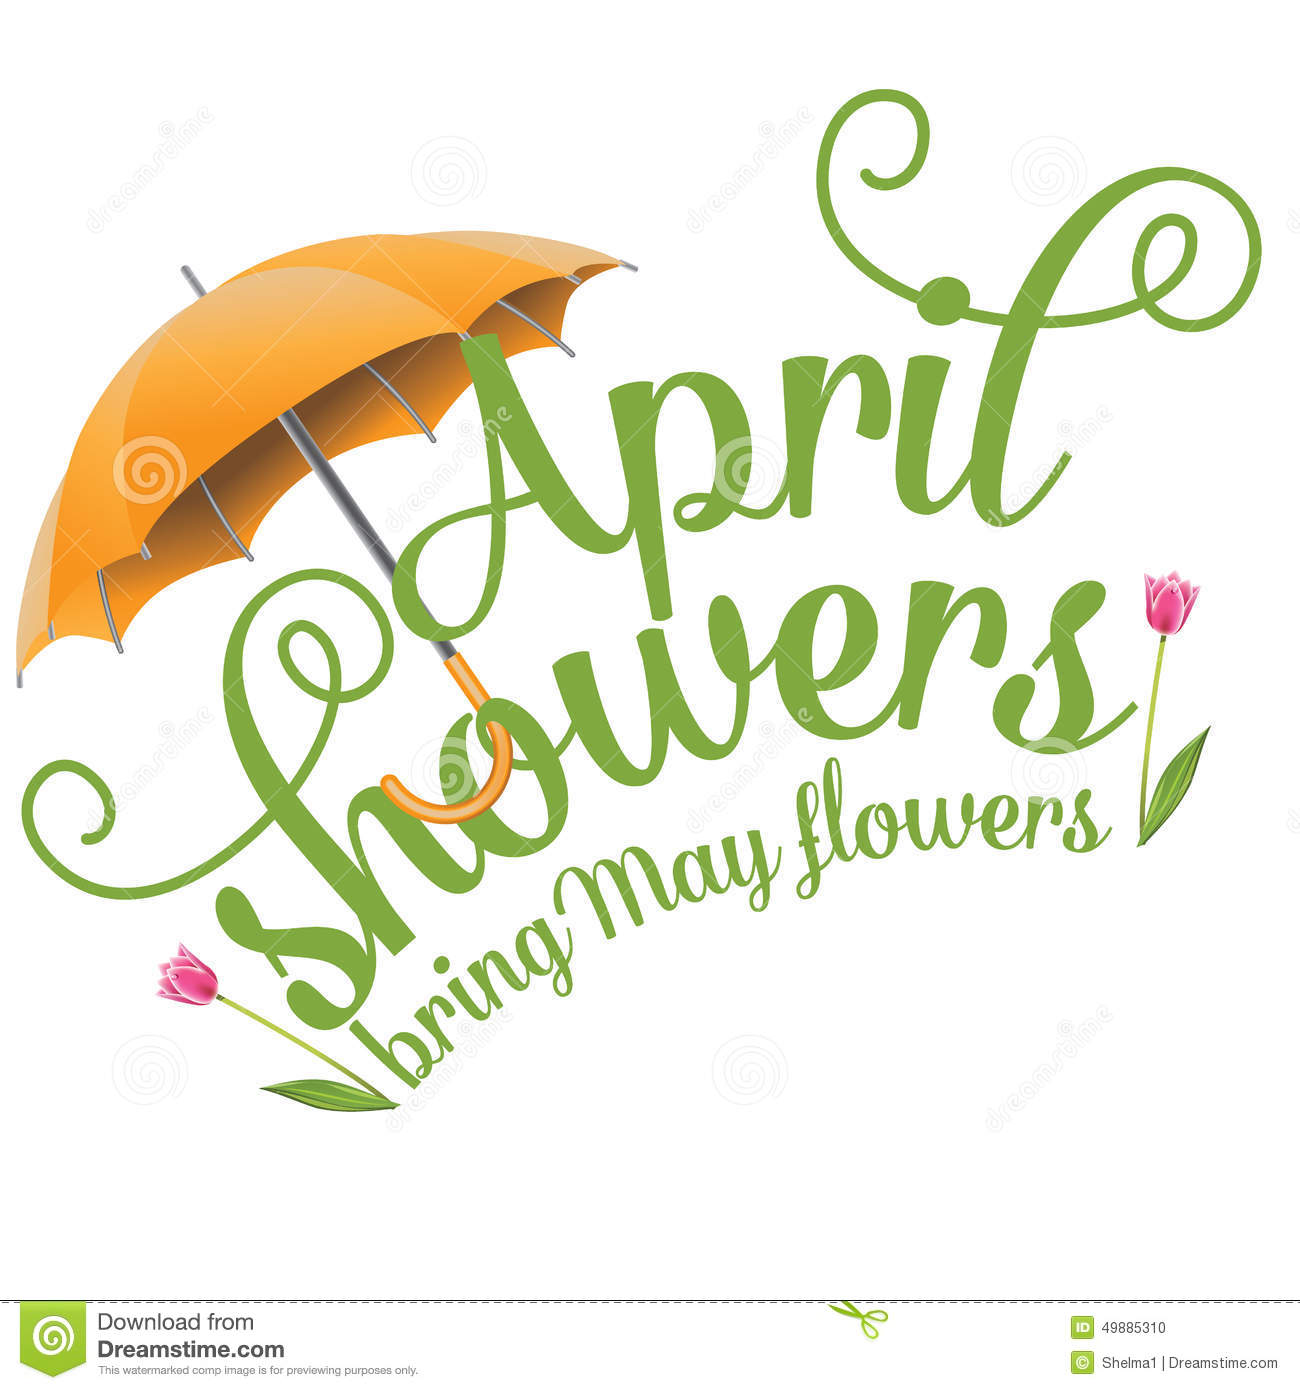 April Clip Art | April Showers Bring May-April Clip Art | April Showers Bring May Flowers Design Stock Vector - Image: 49885310 | APRIL | Pinterest | May flowers, Clip art and Spring-2